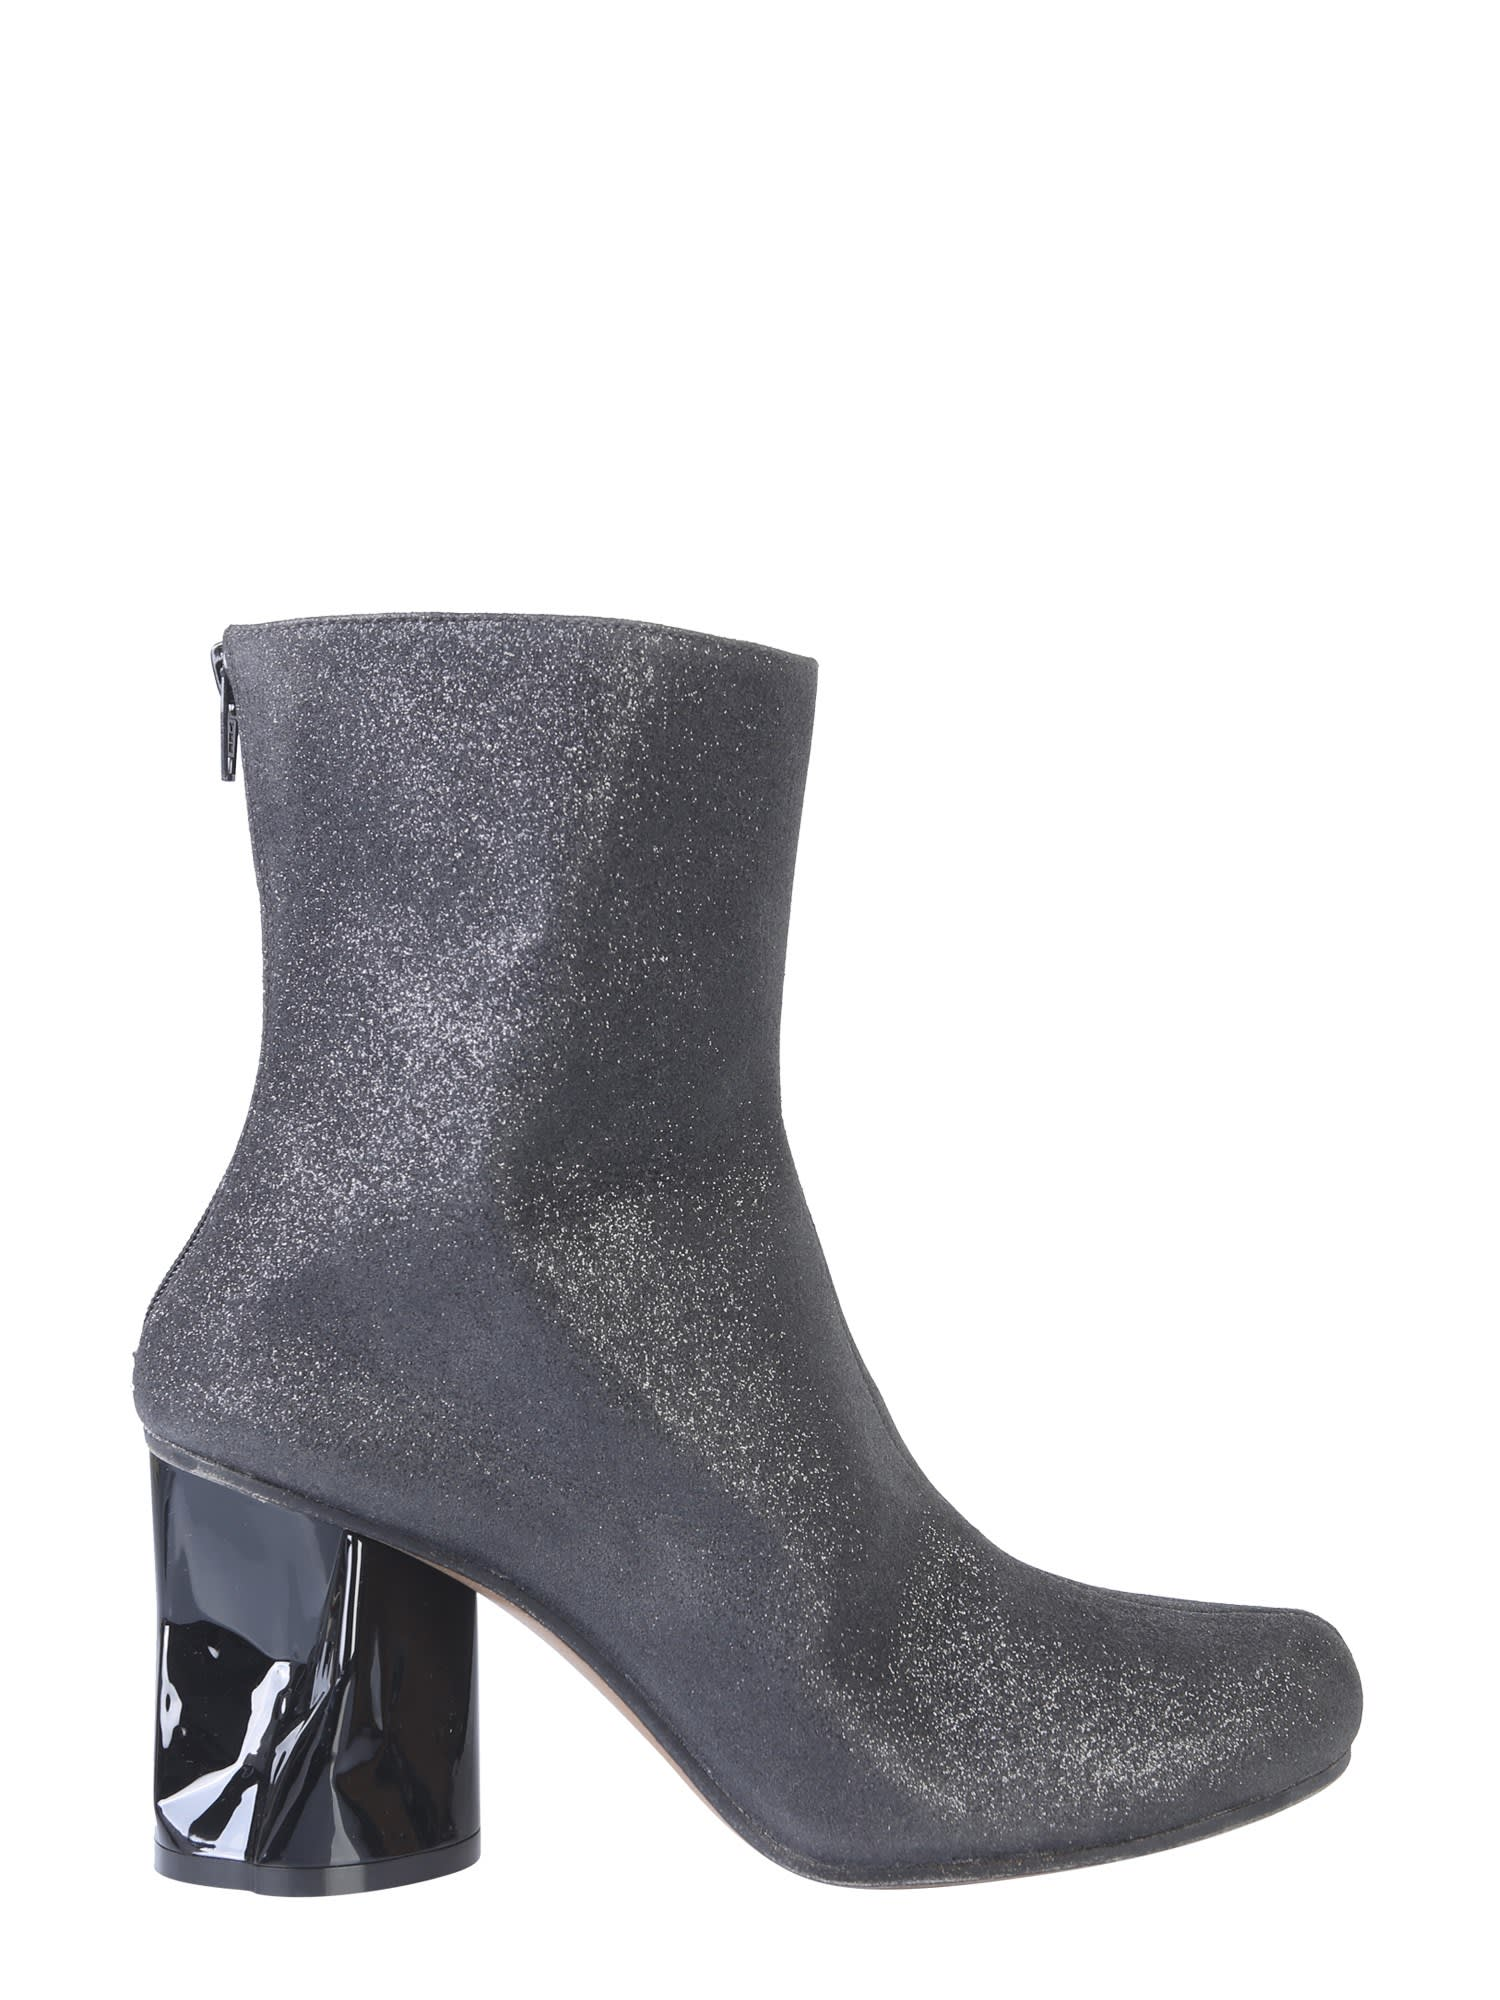 Buy Maison Margiela Boot With Crushed Heel online, shop Maison Margiela shoes with free shipping